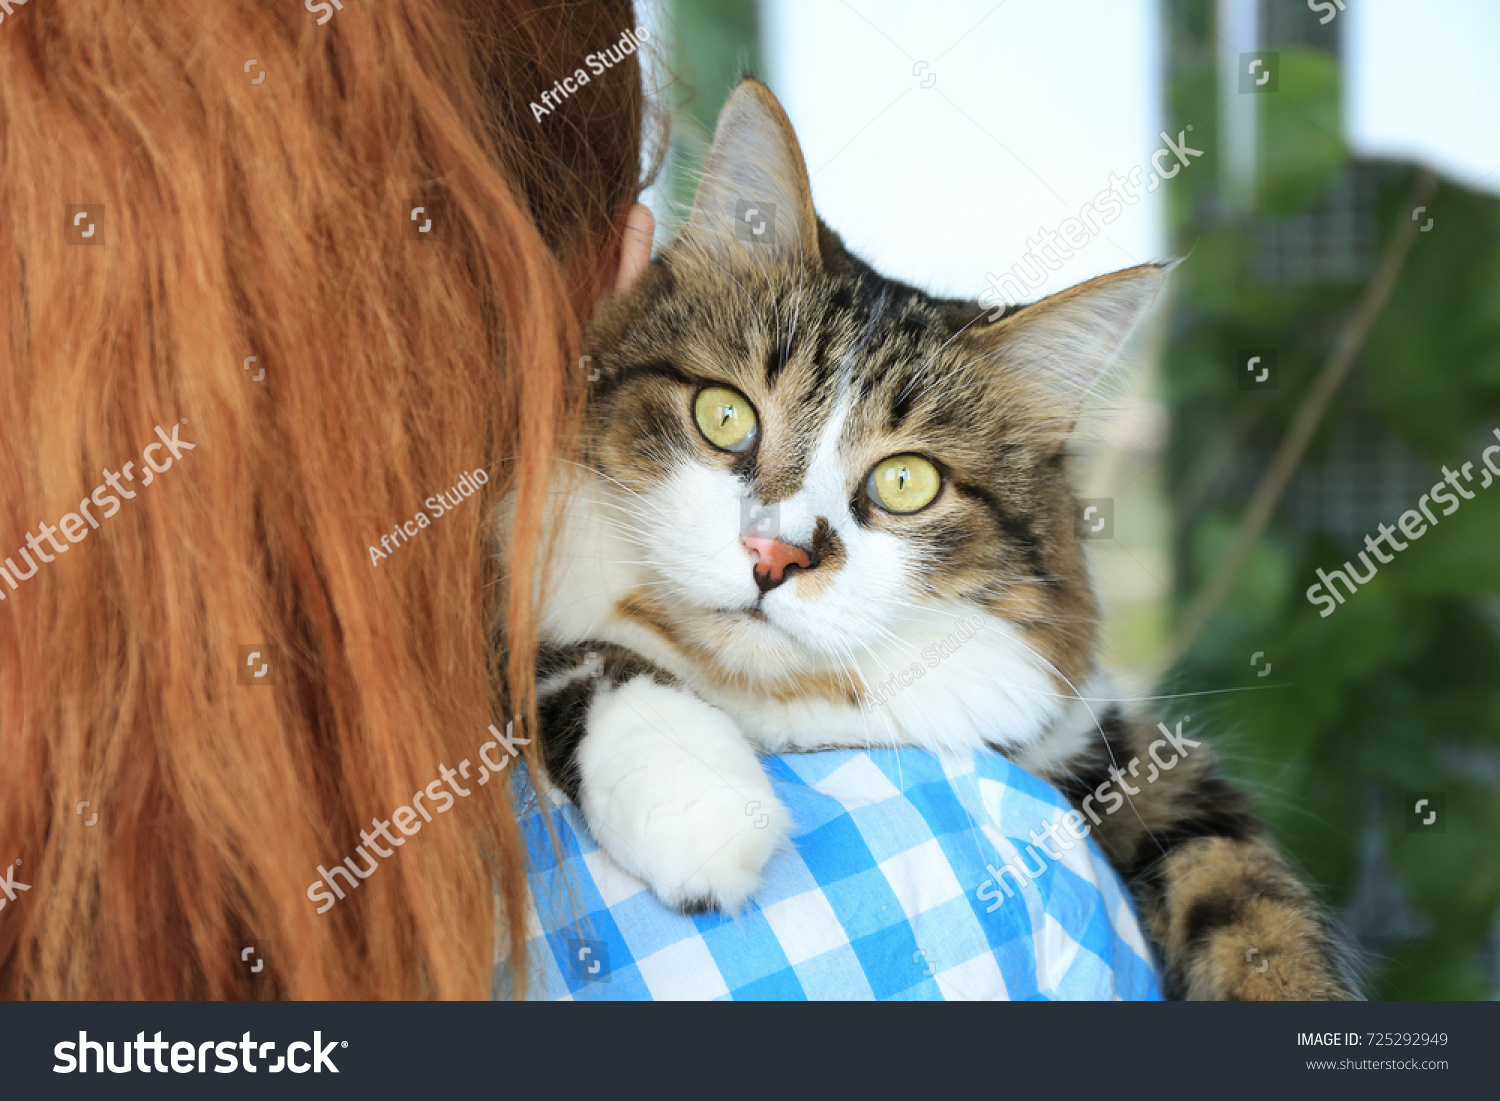 Woman Holding Fluffy Cat Adoption Concept Stock